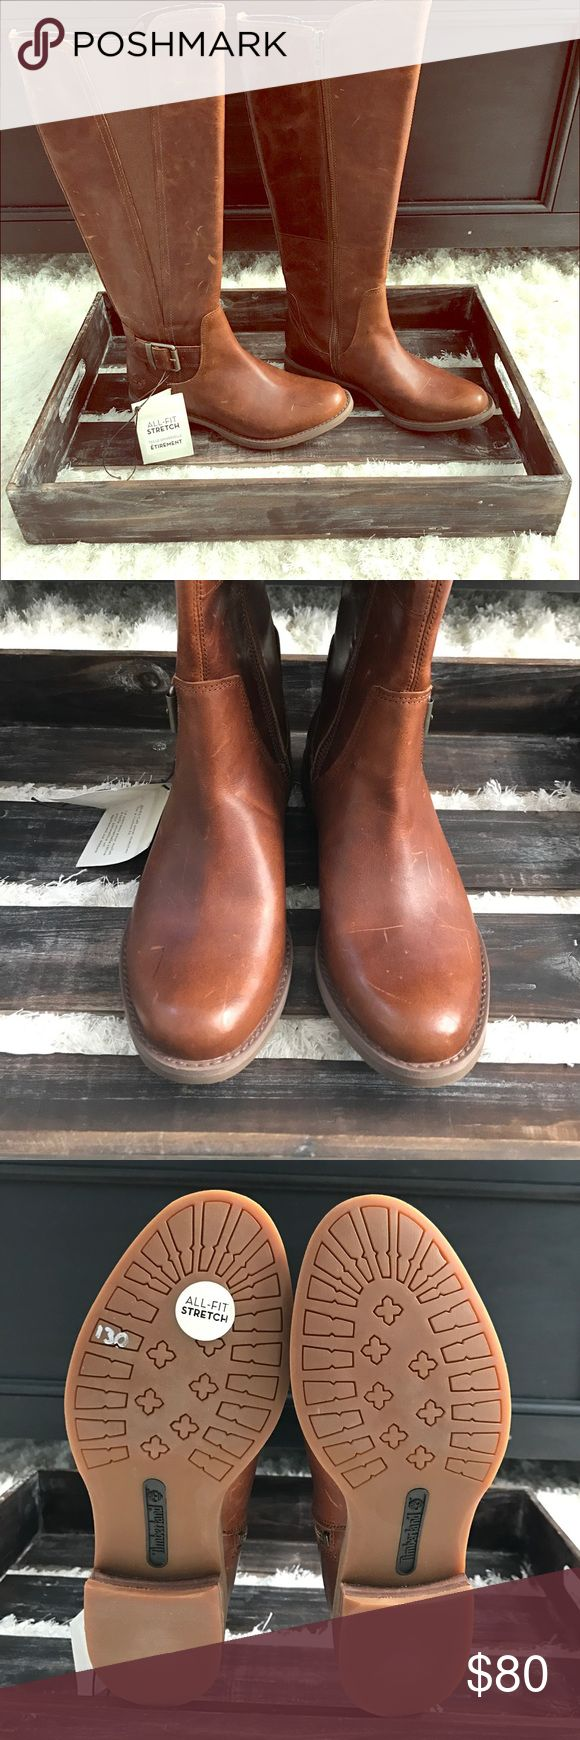 """BRAND NEW TIMBERLAND BOOTS Brand NEW gorgeous brown leather Timber Hill Tall Savin boots! Super comfy soft leather and guaranteed """"all fit stretch"""" as seen on tag! 👢❤️ Timberland Shoes"""